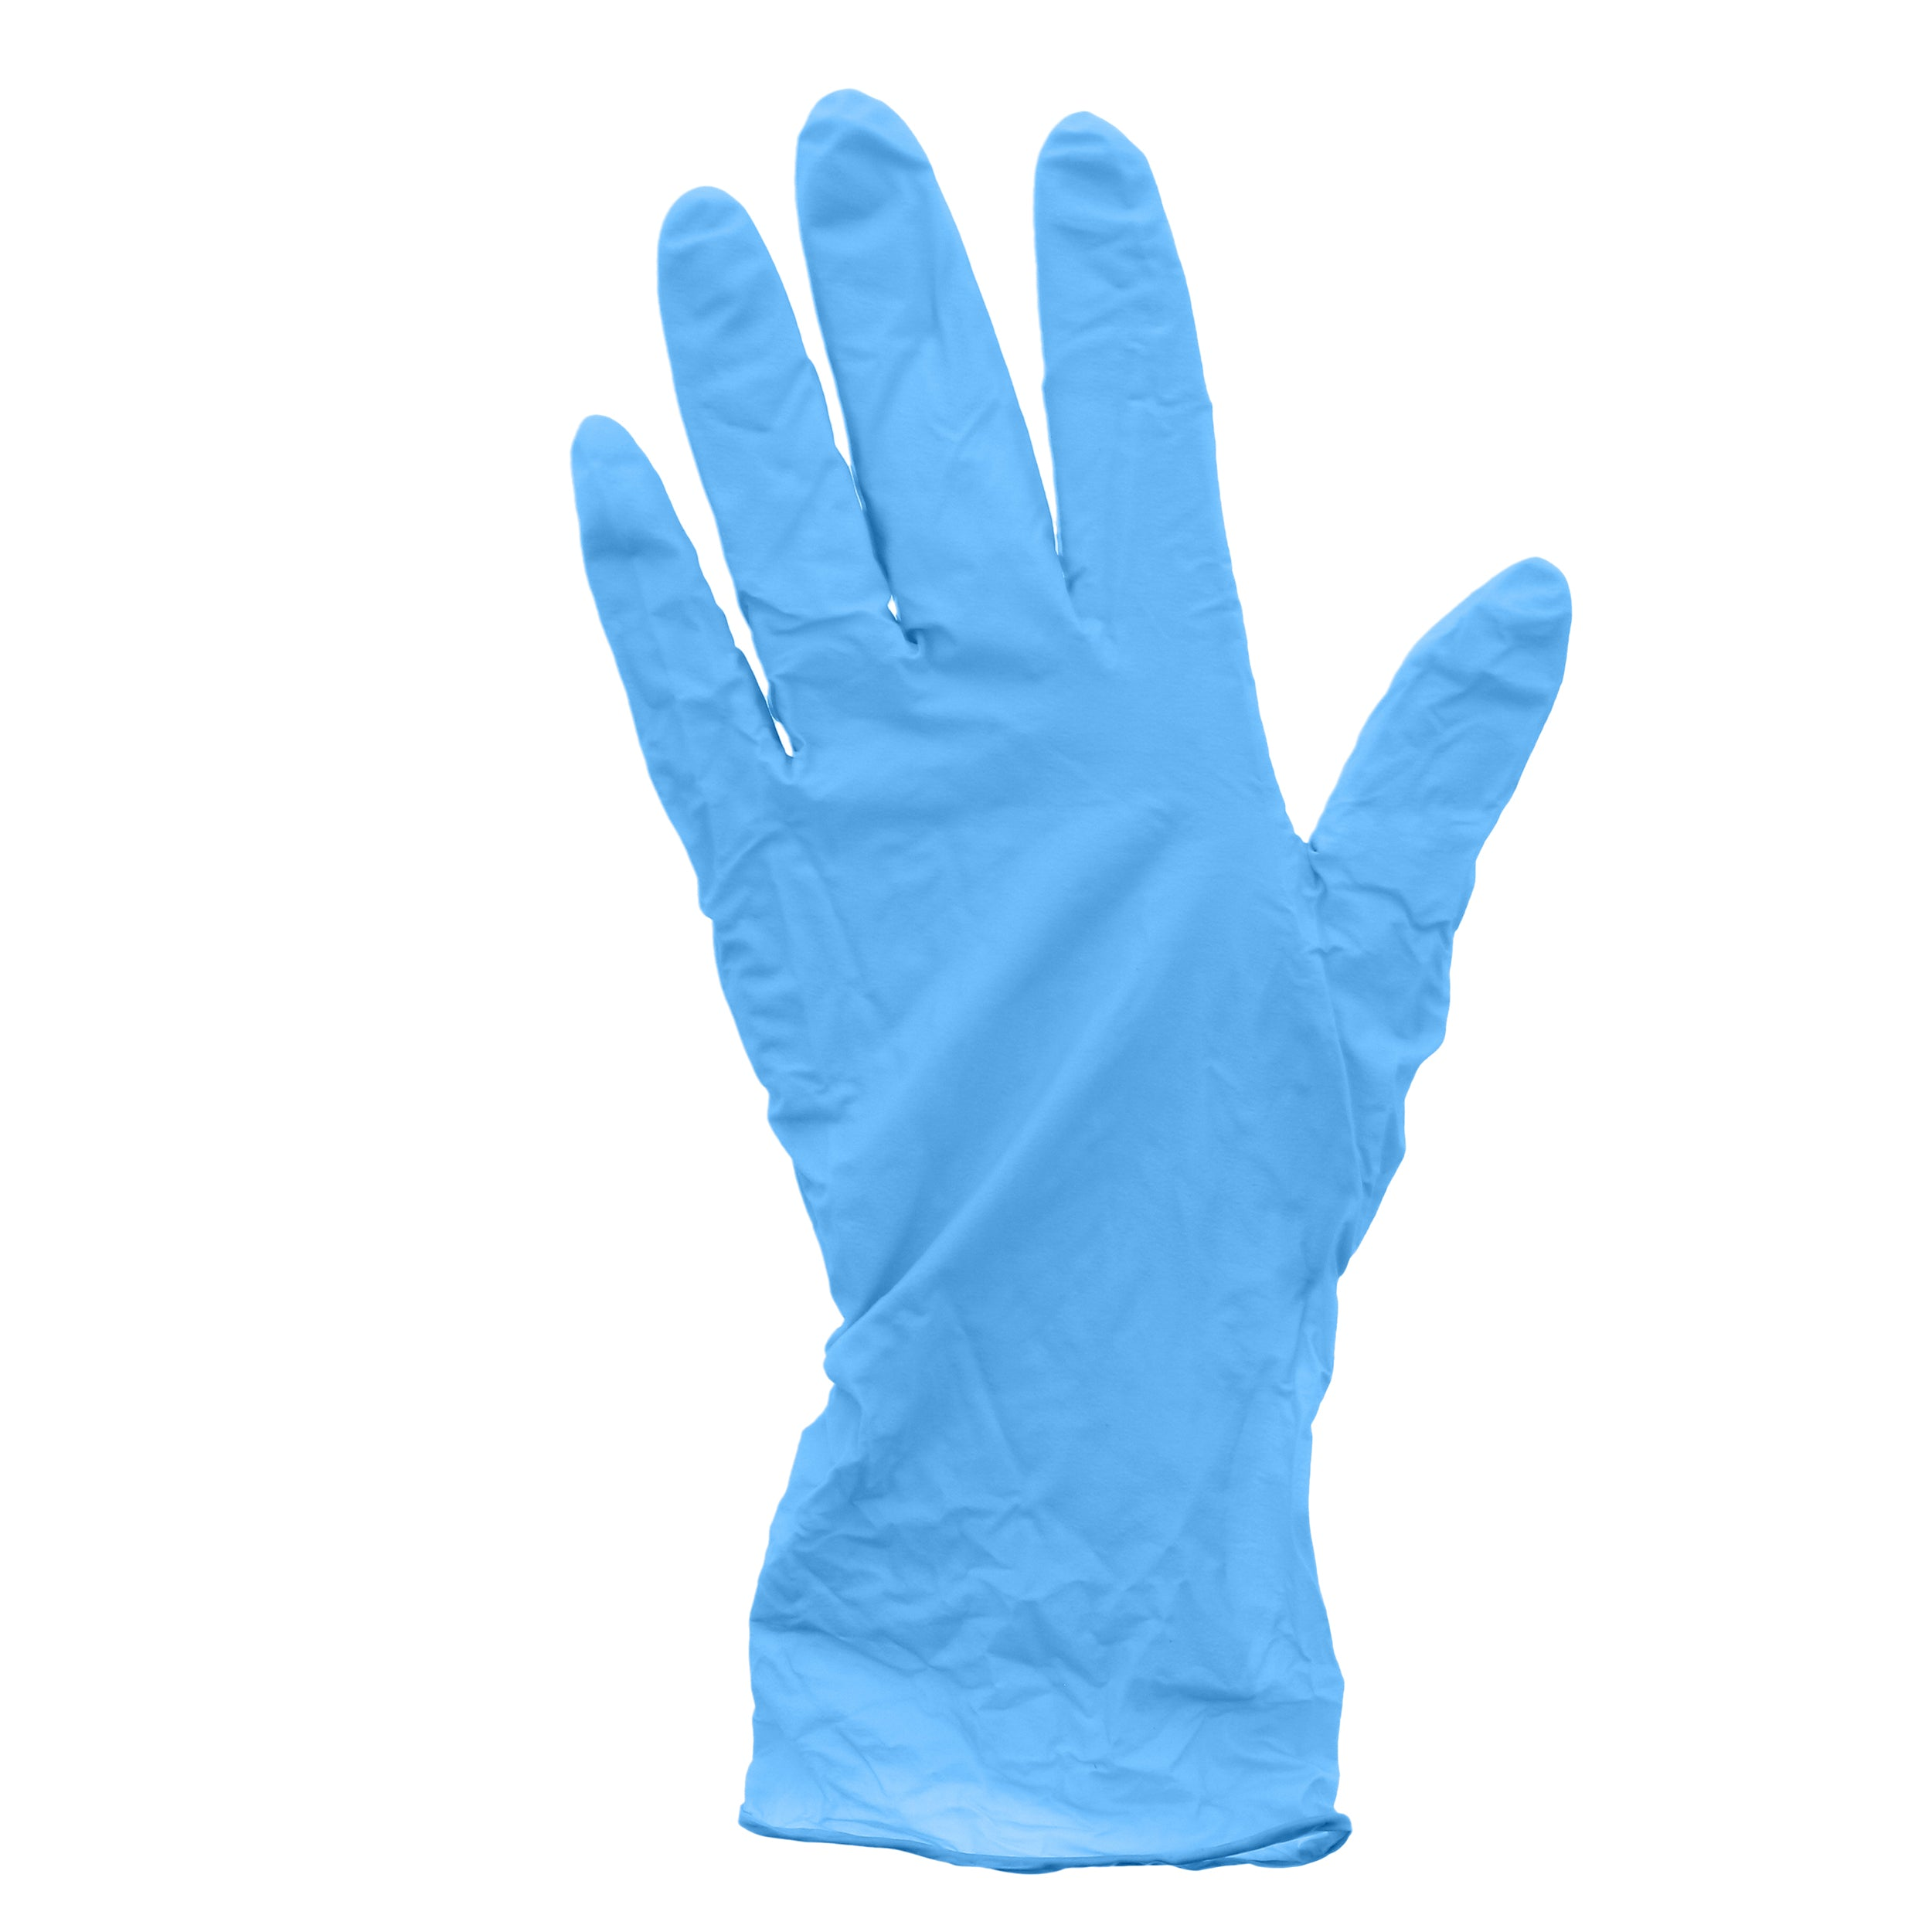 ... 20993 | Glove, Pacific Blue, Nitrile, Soft, PF, Large, 100 ...